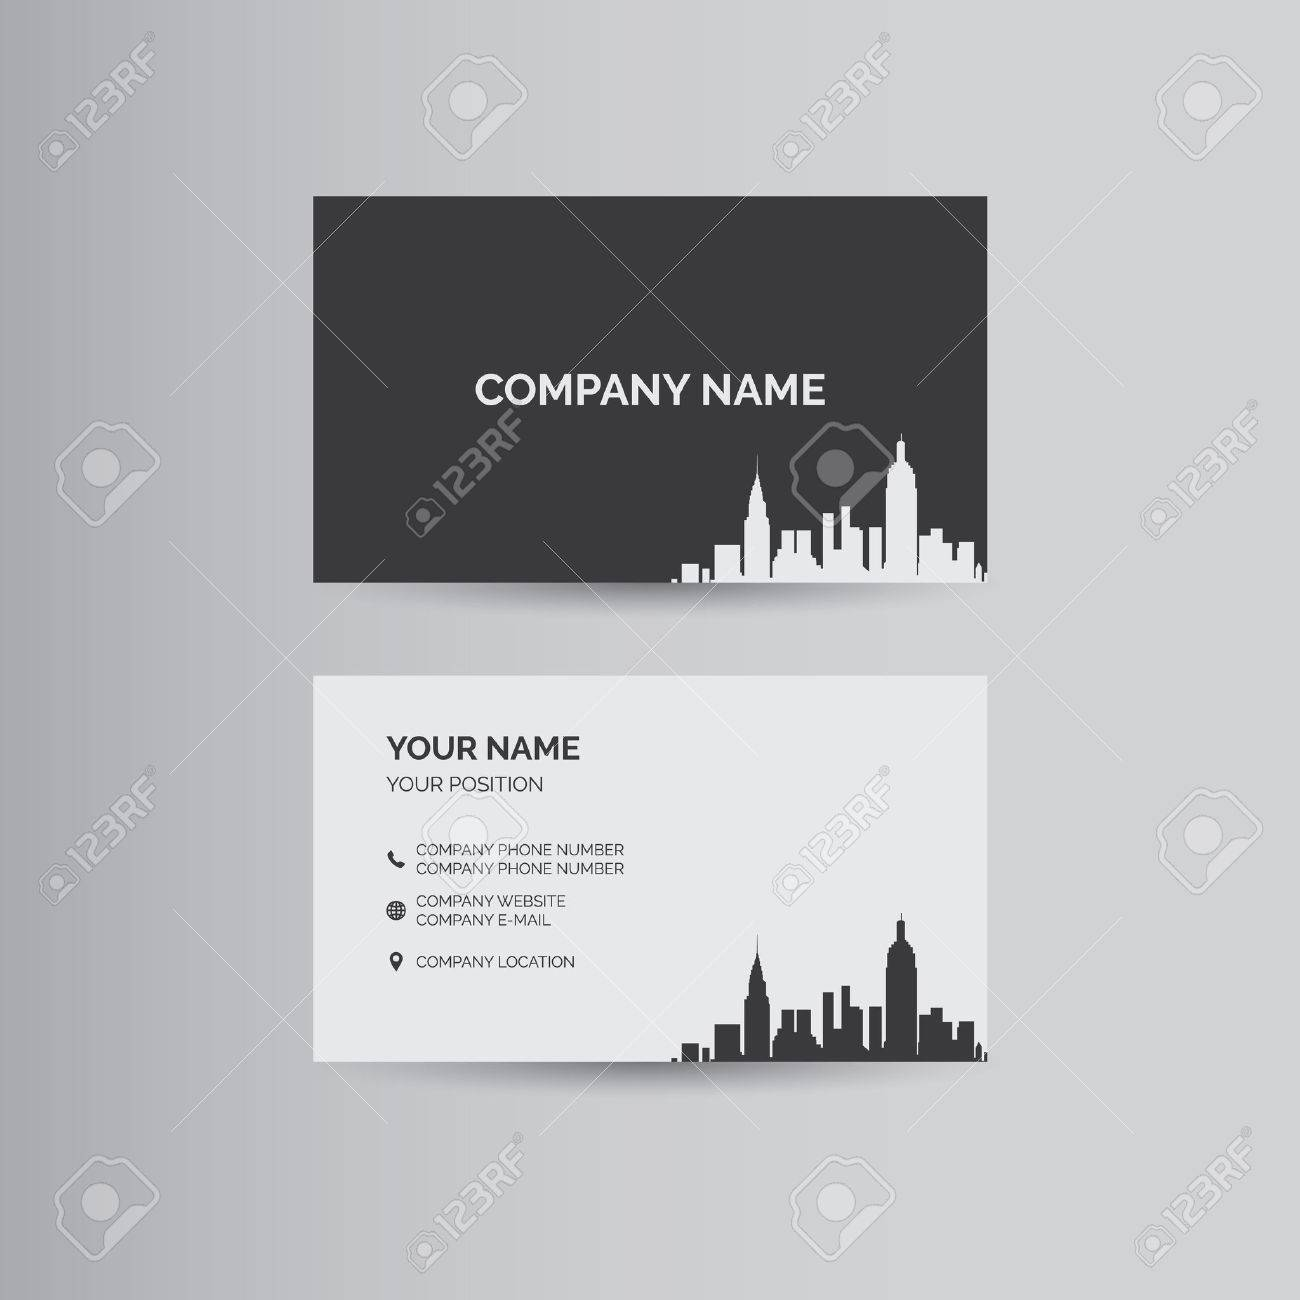 Simple geometric template for business card - 50826009